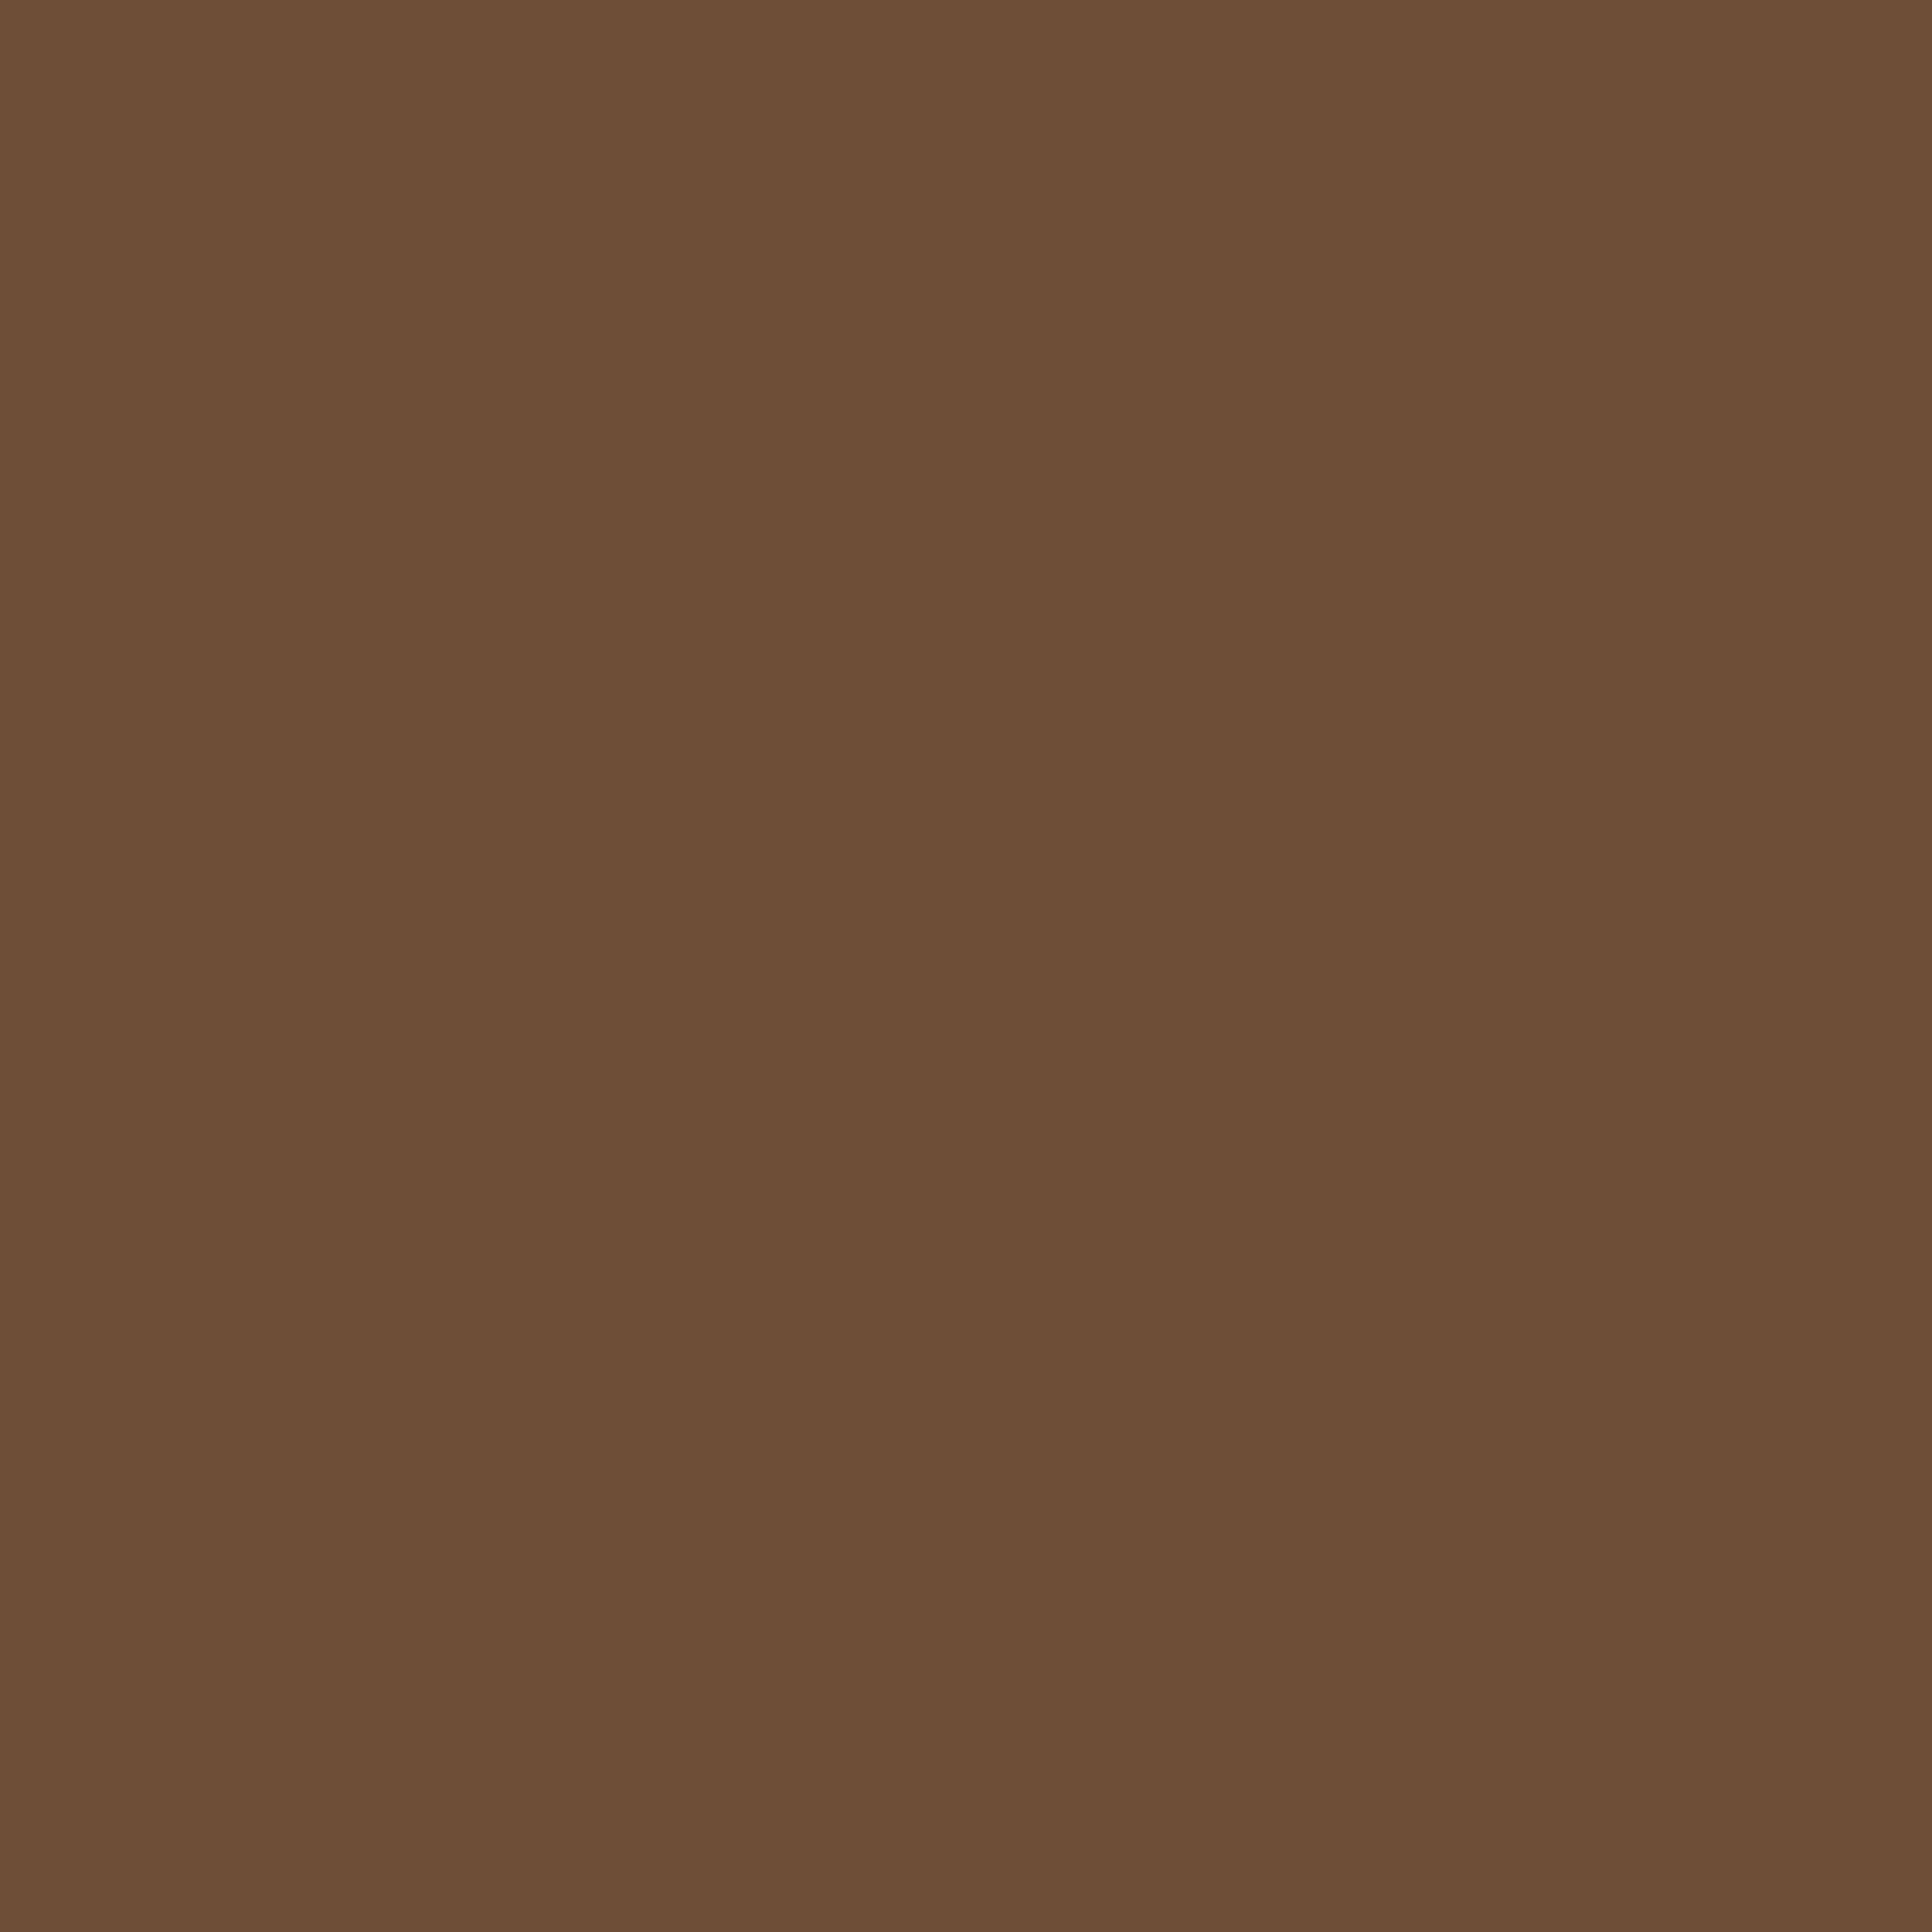 2048x2048 Coffee Solid Color Background